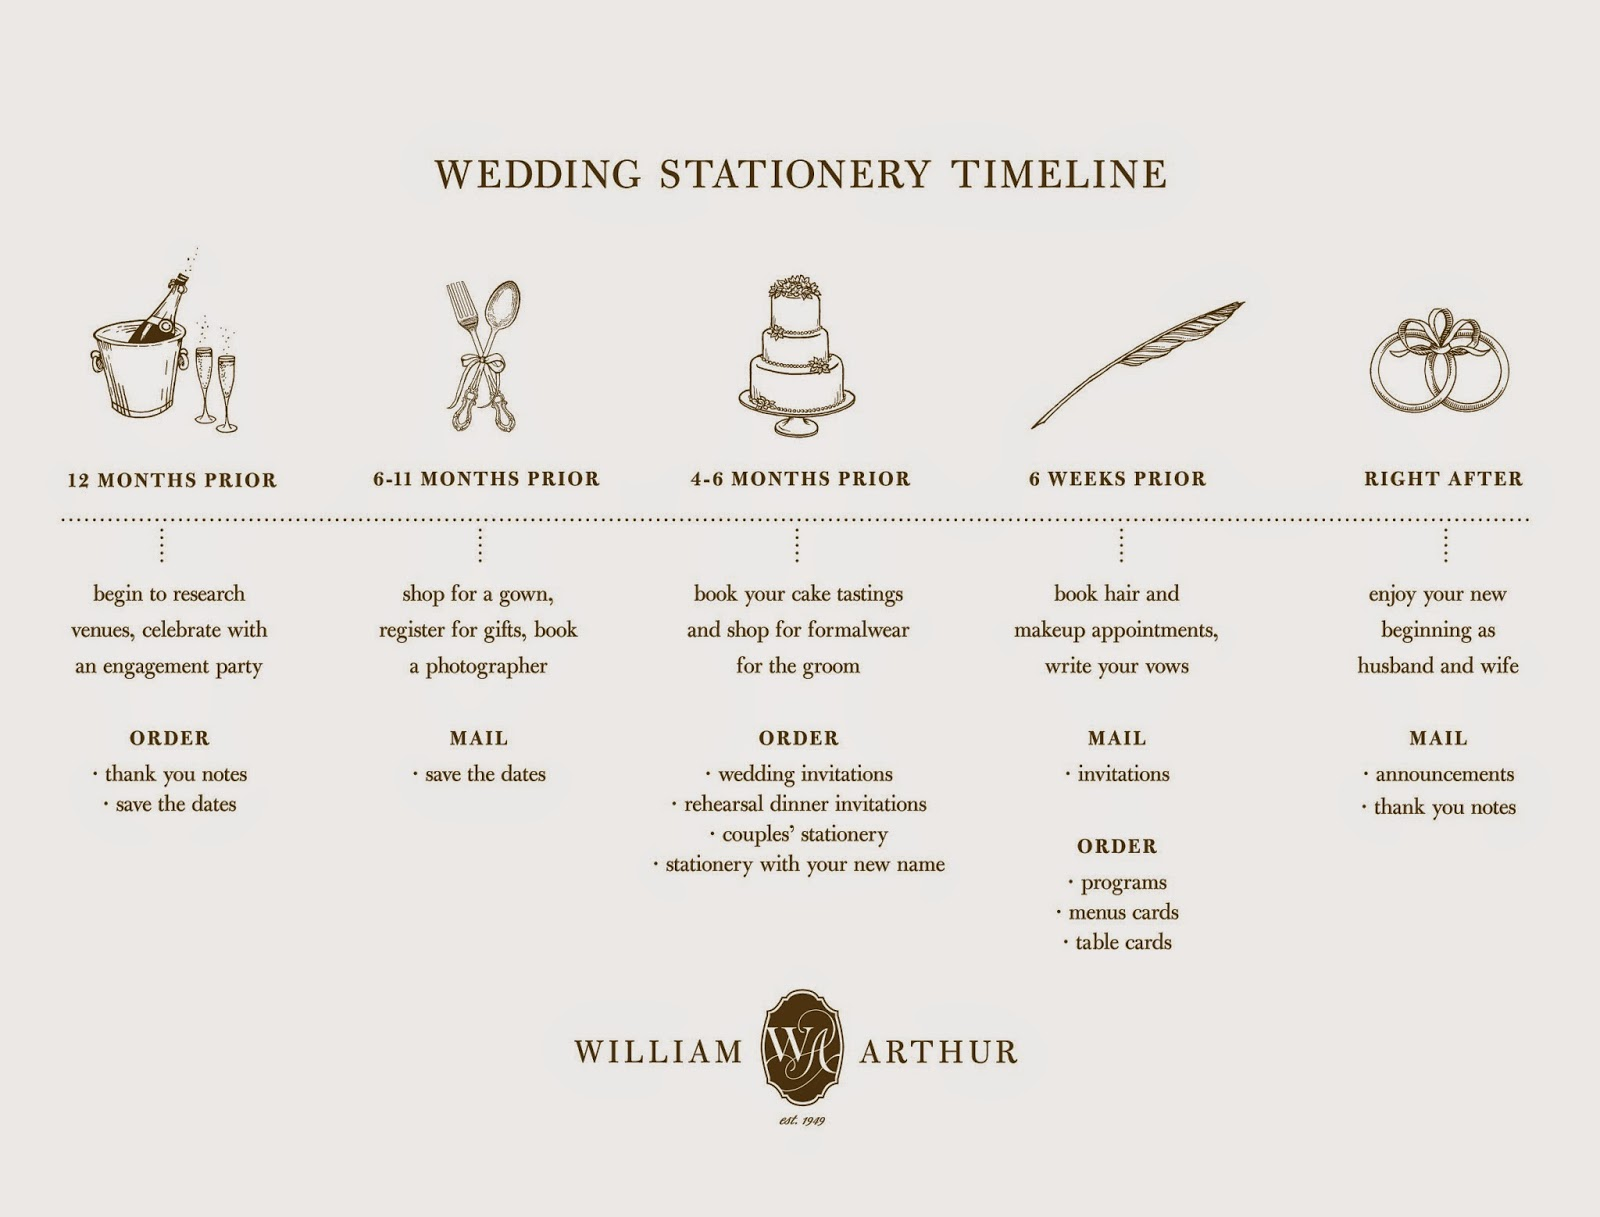 When To Mail Wedding Invitations: William Arthur Blog: When To Mail You Save The Dates